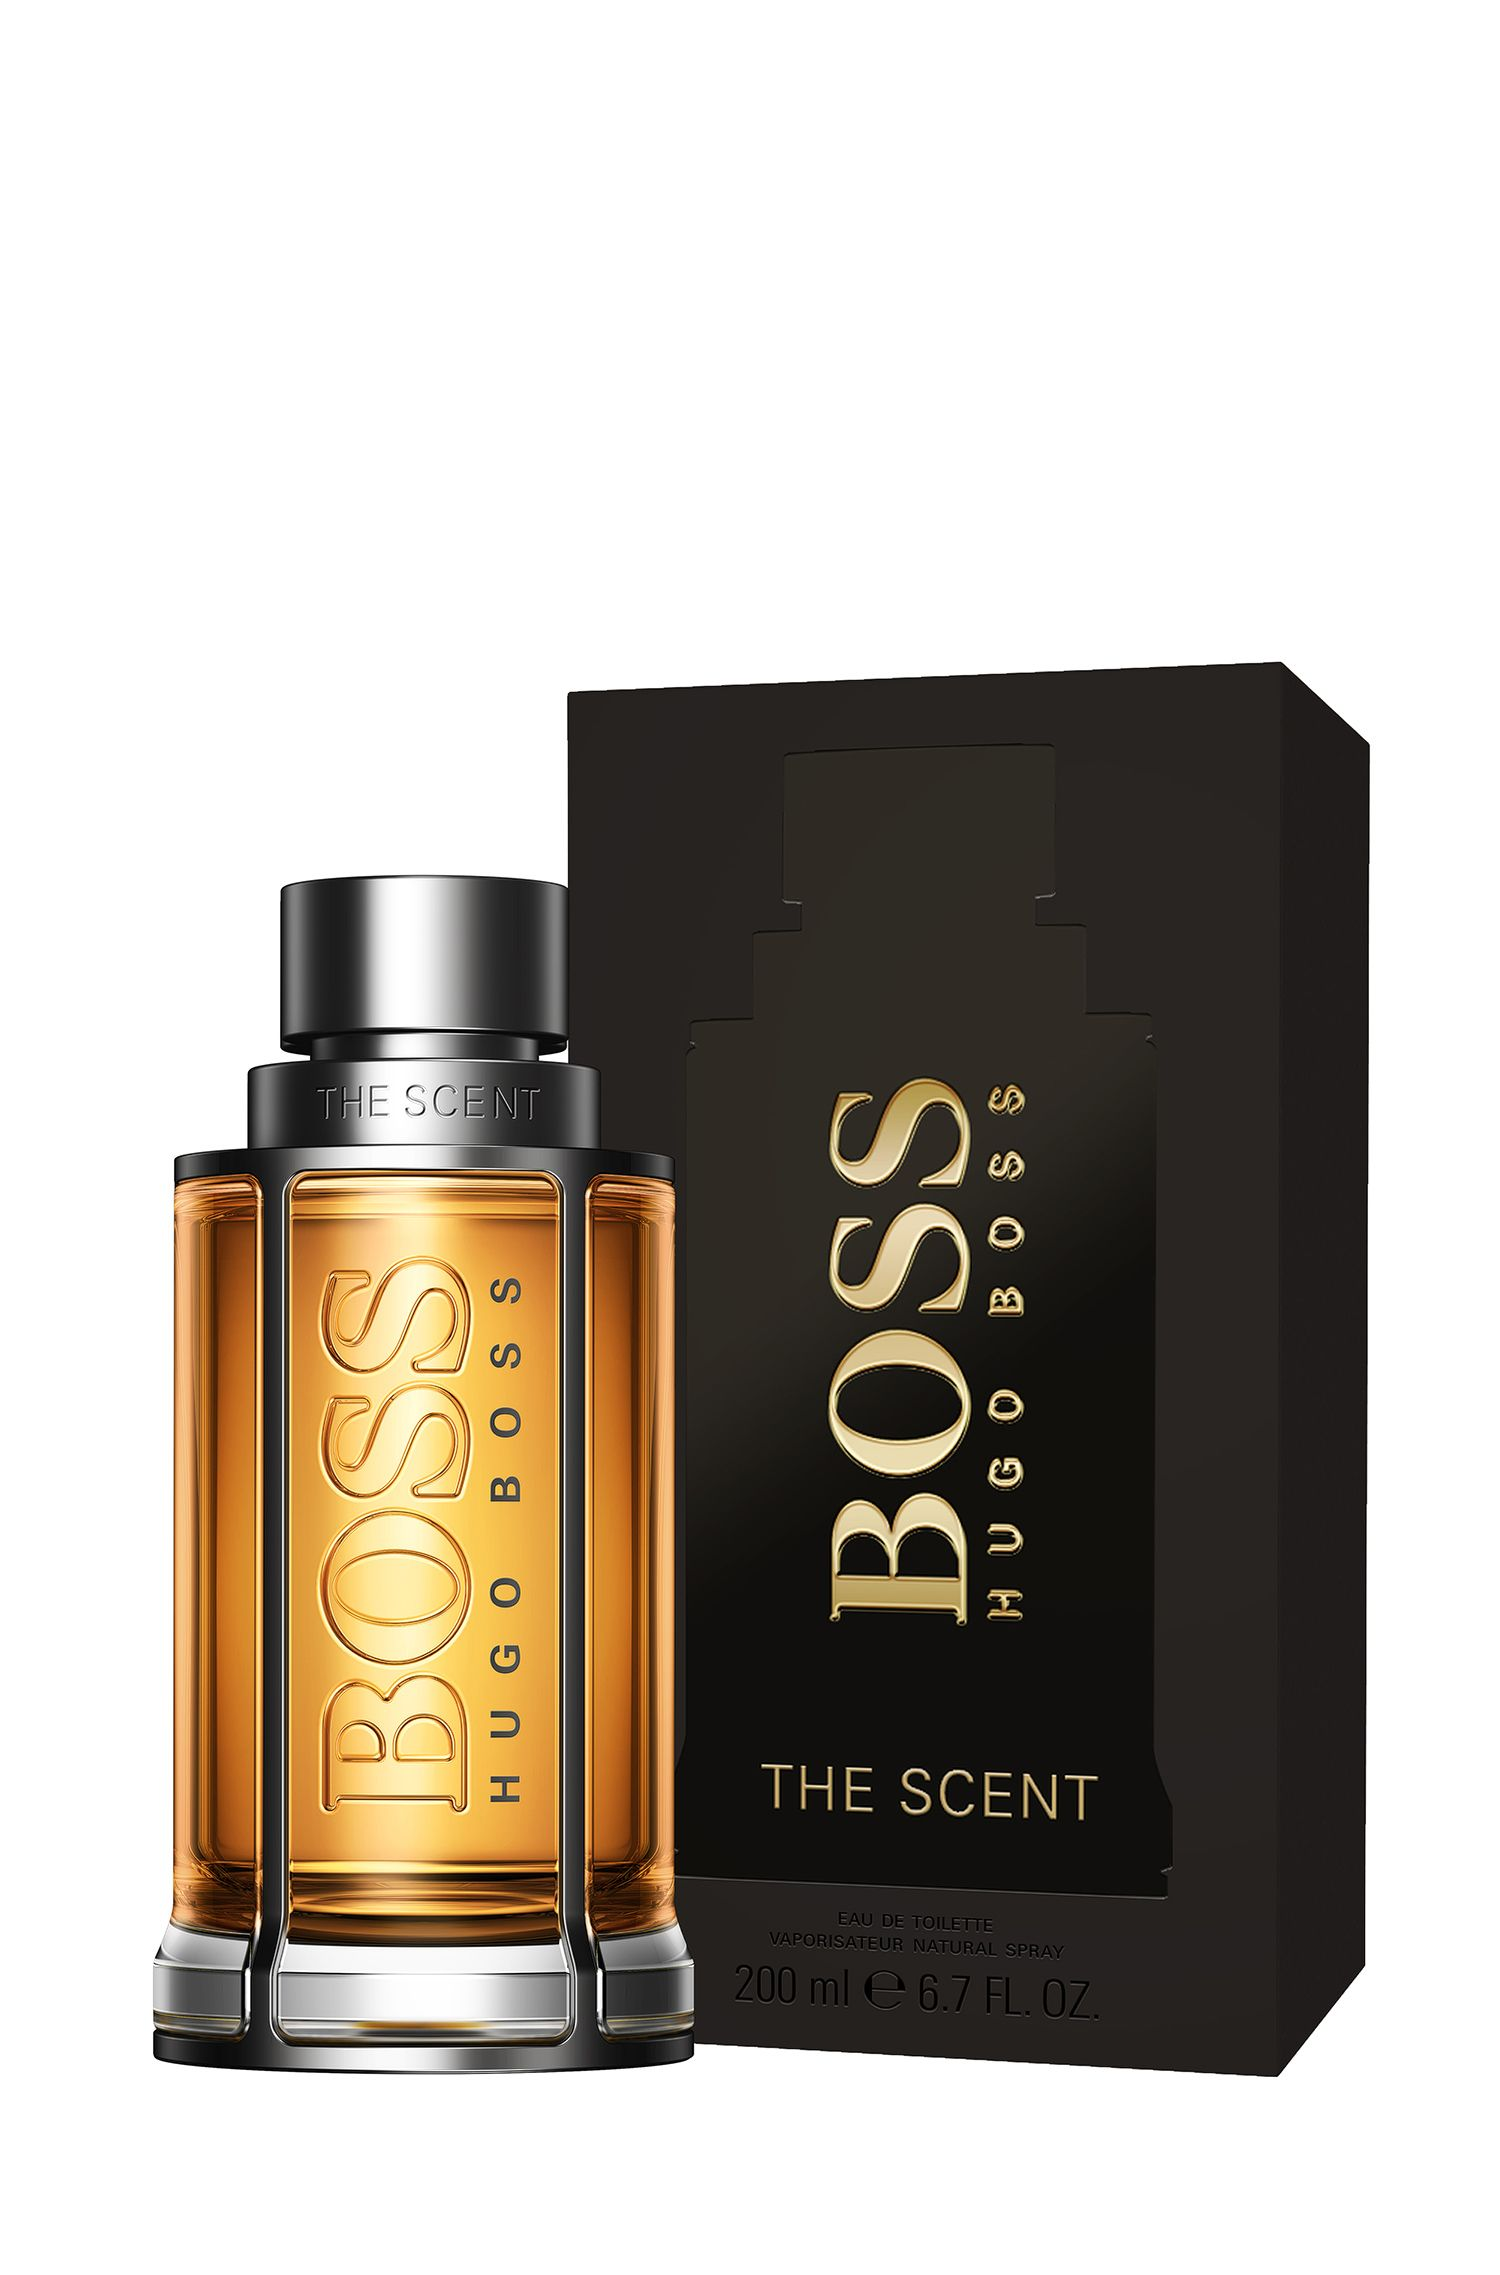 Eau de toilette BOSS The Scent da 200 ml, Assorted-Pre-Pack